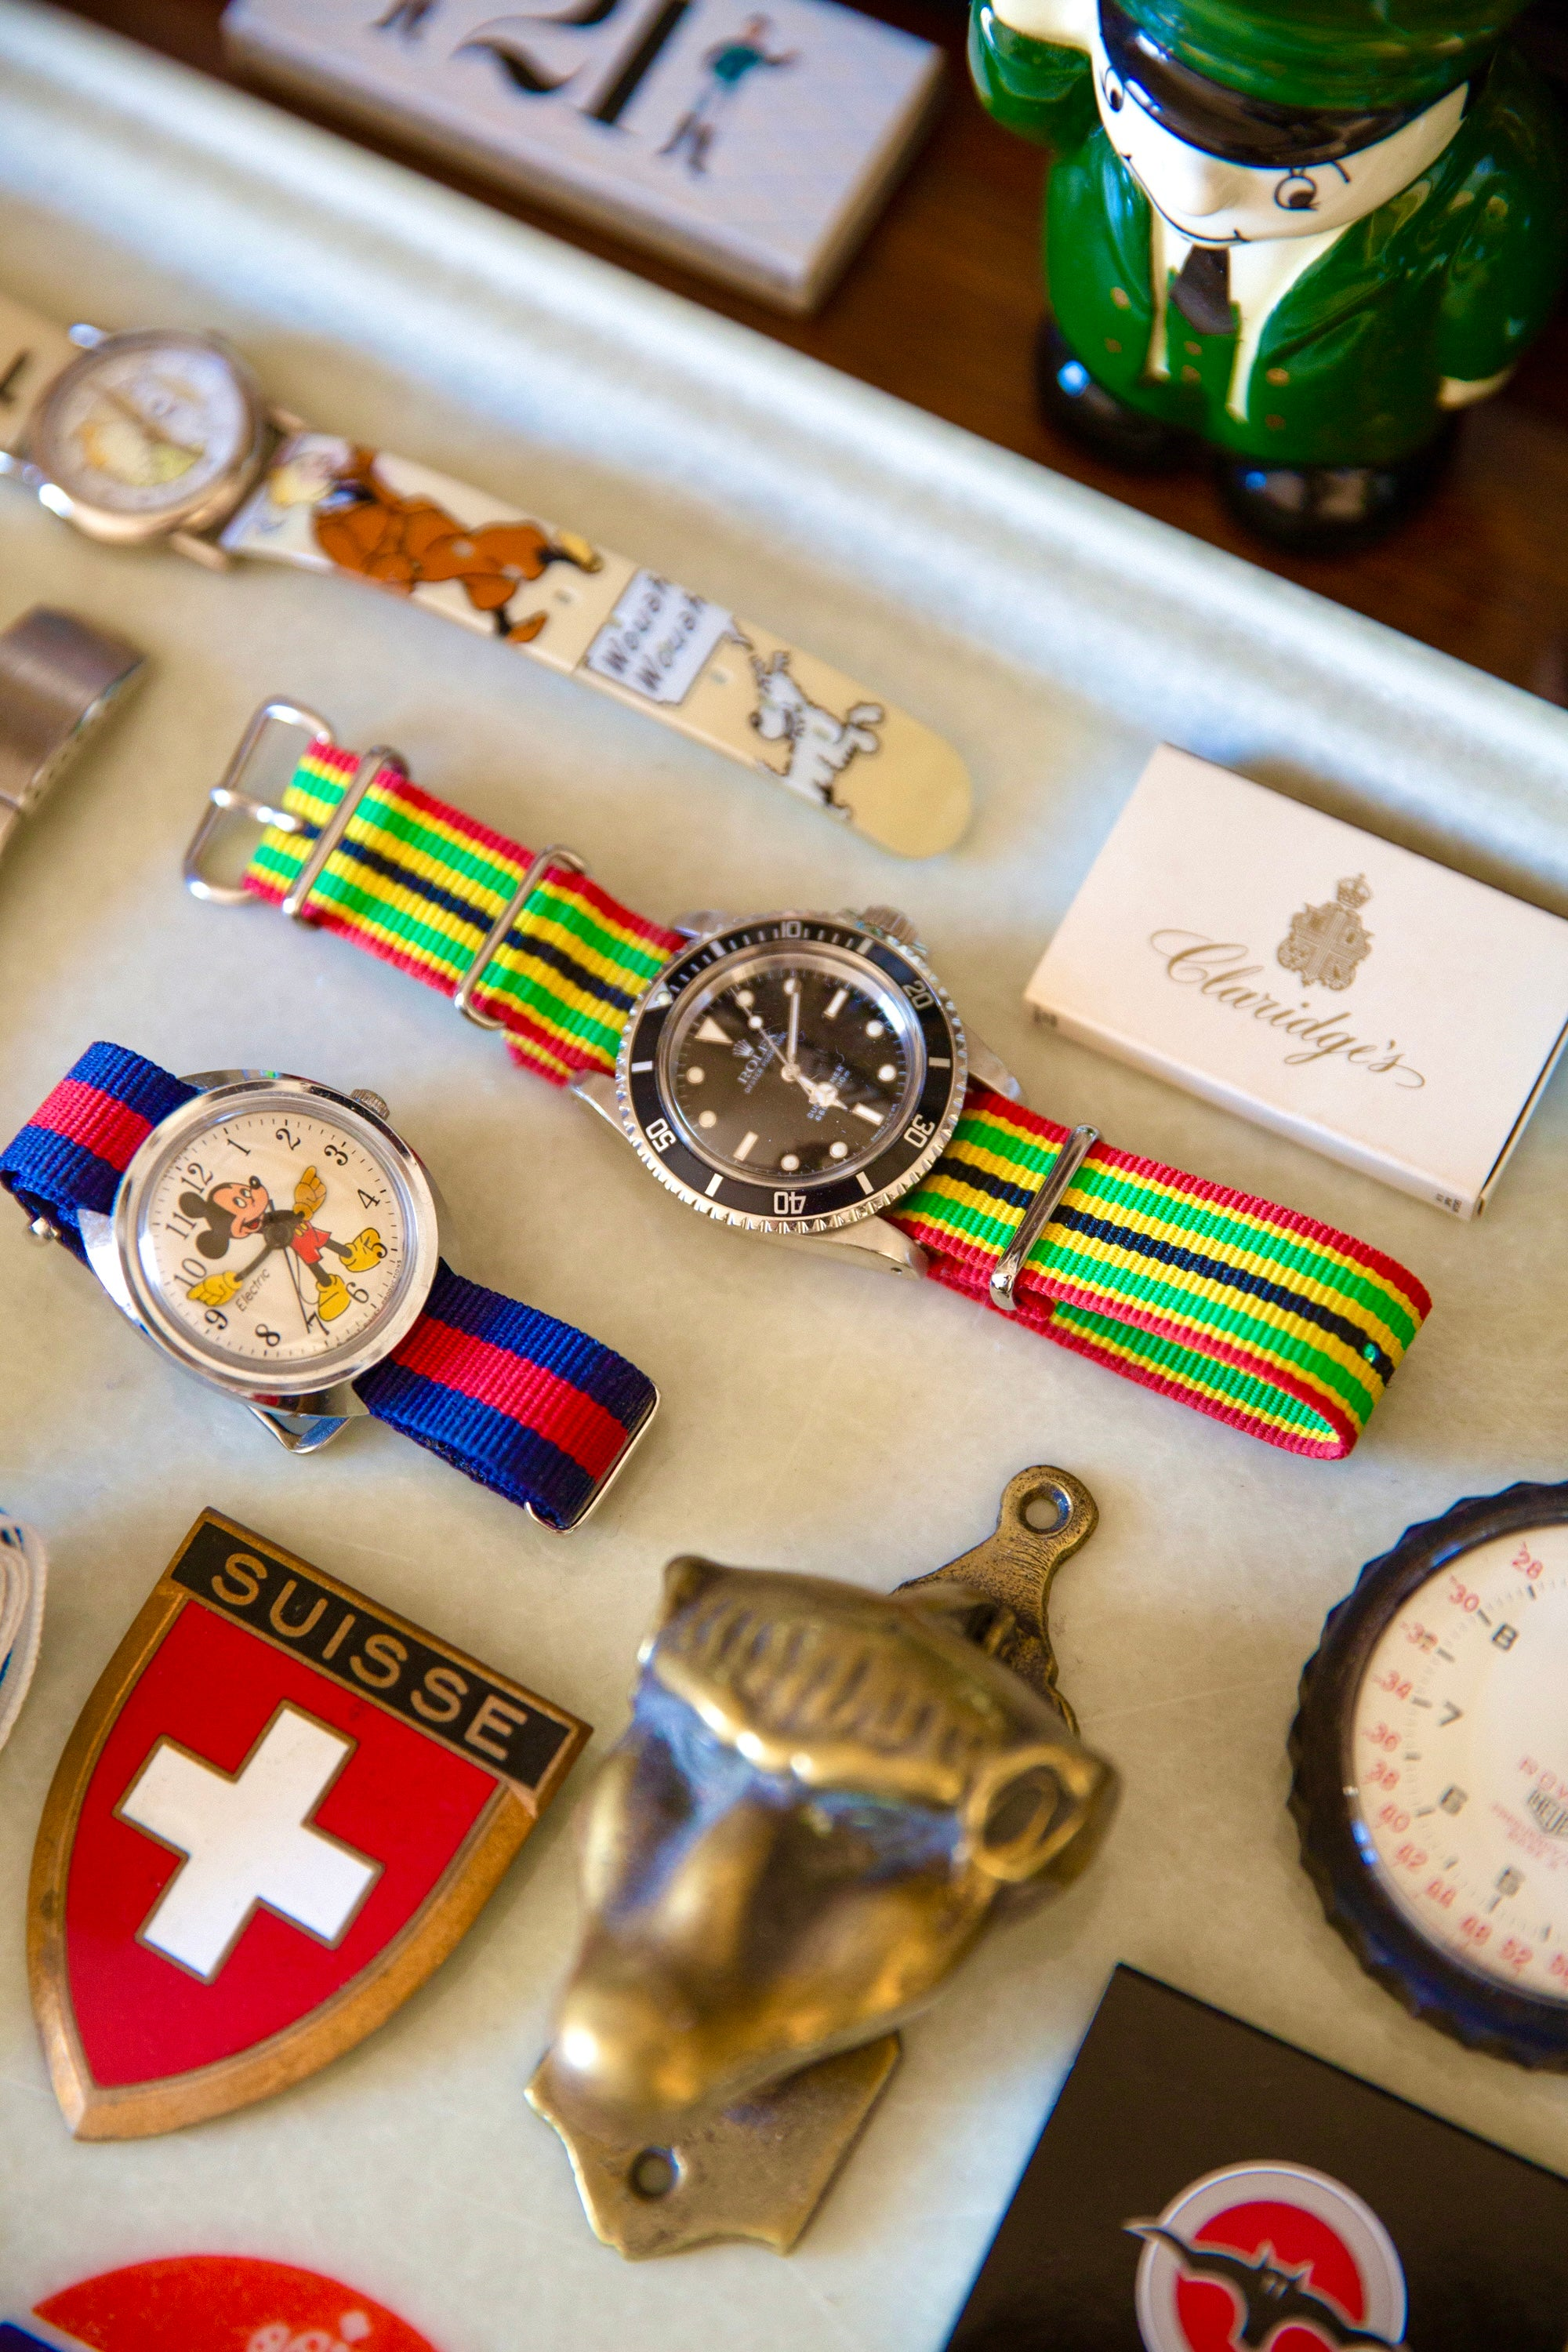 Close-up of various watches and patches